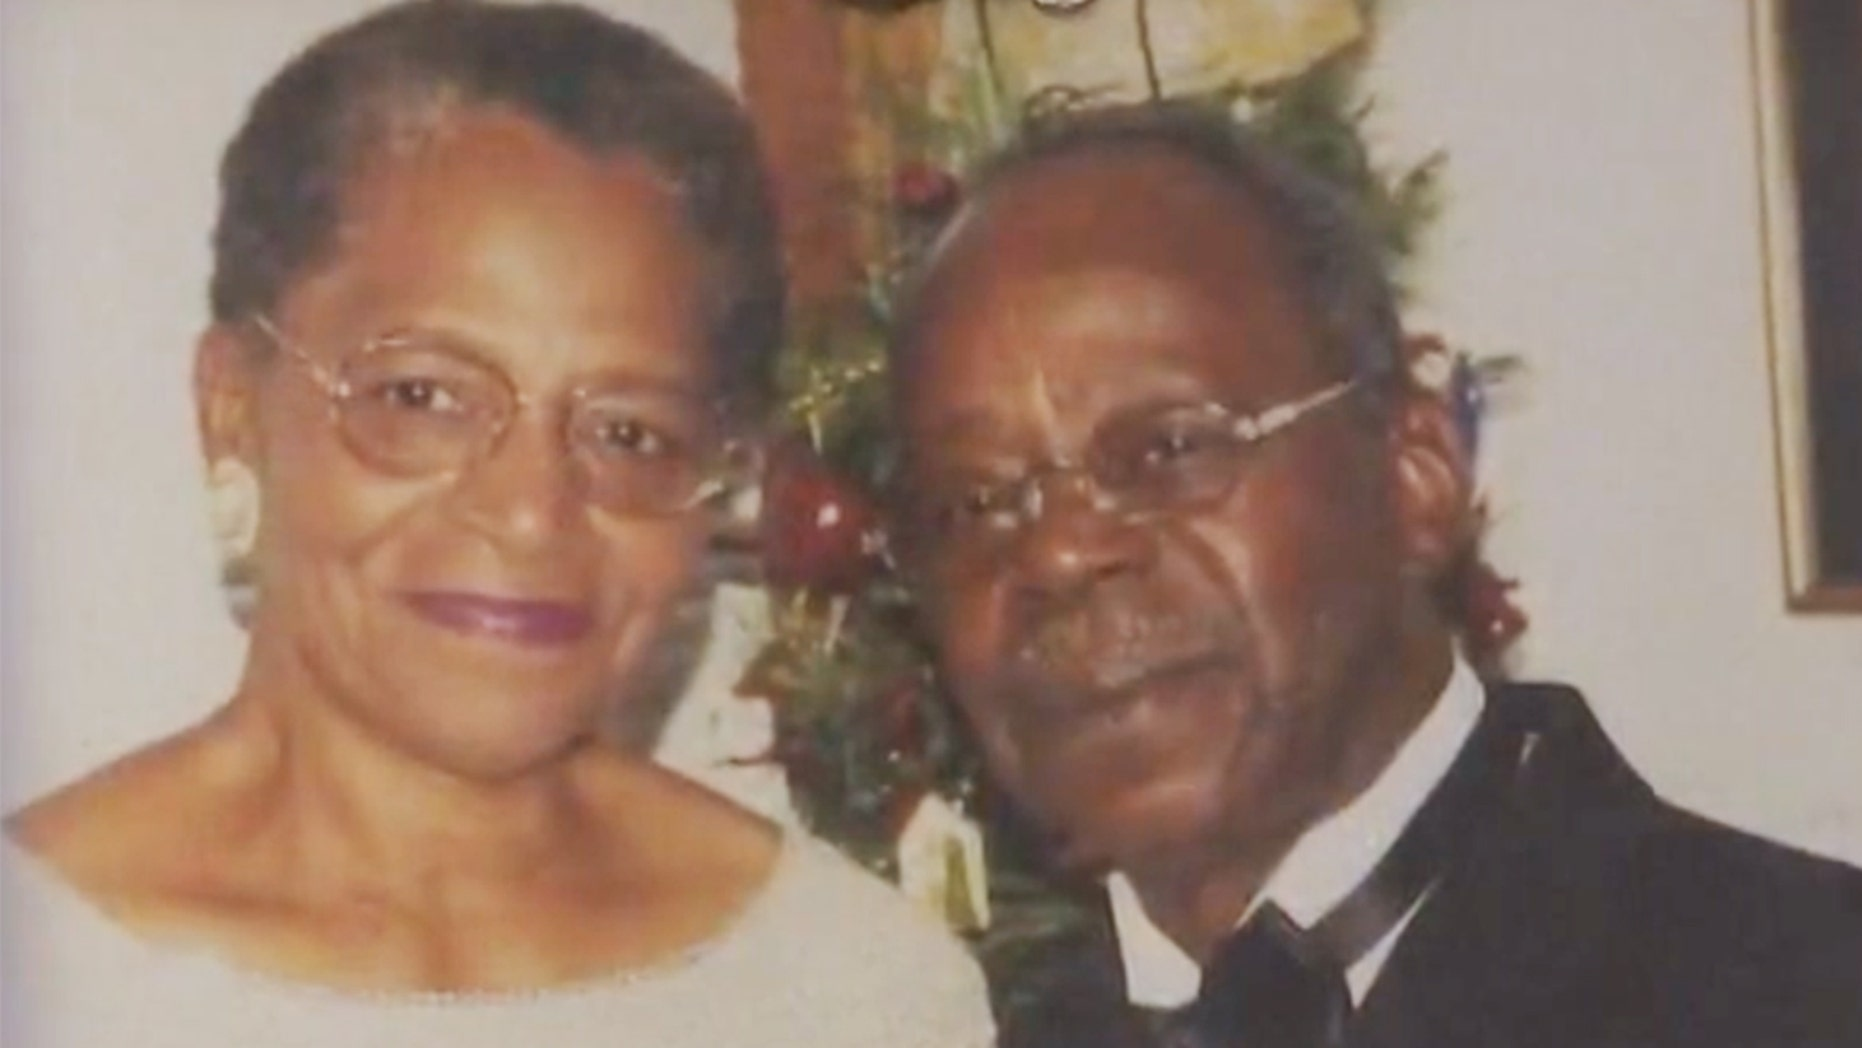 Robert Garland, an 88-year-old veteran in Tennessee, tested positive for West Nile virus before his death, his family claims.